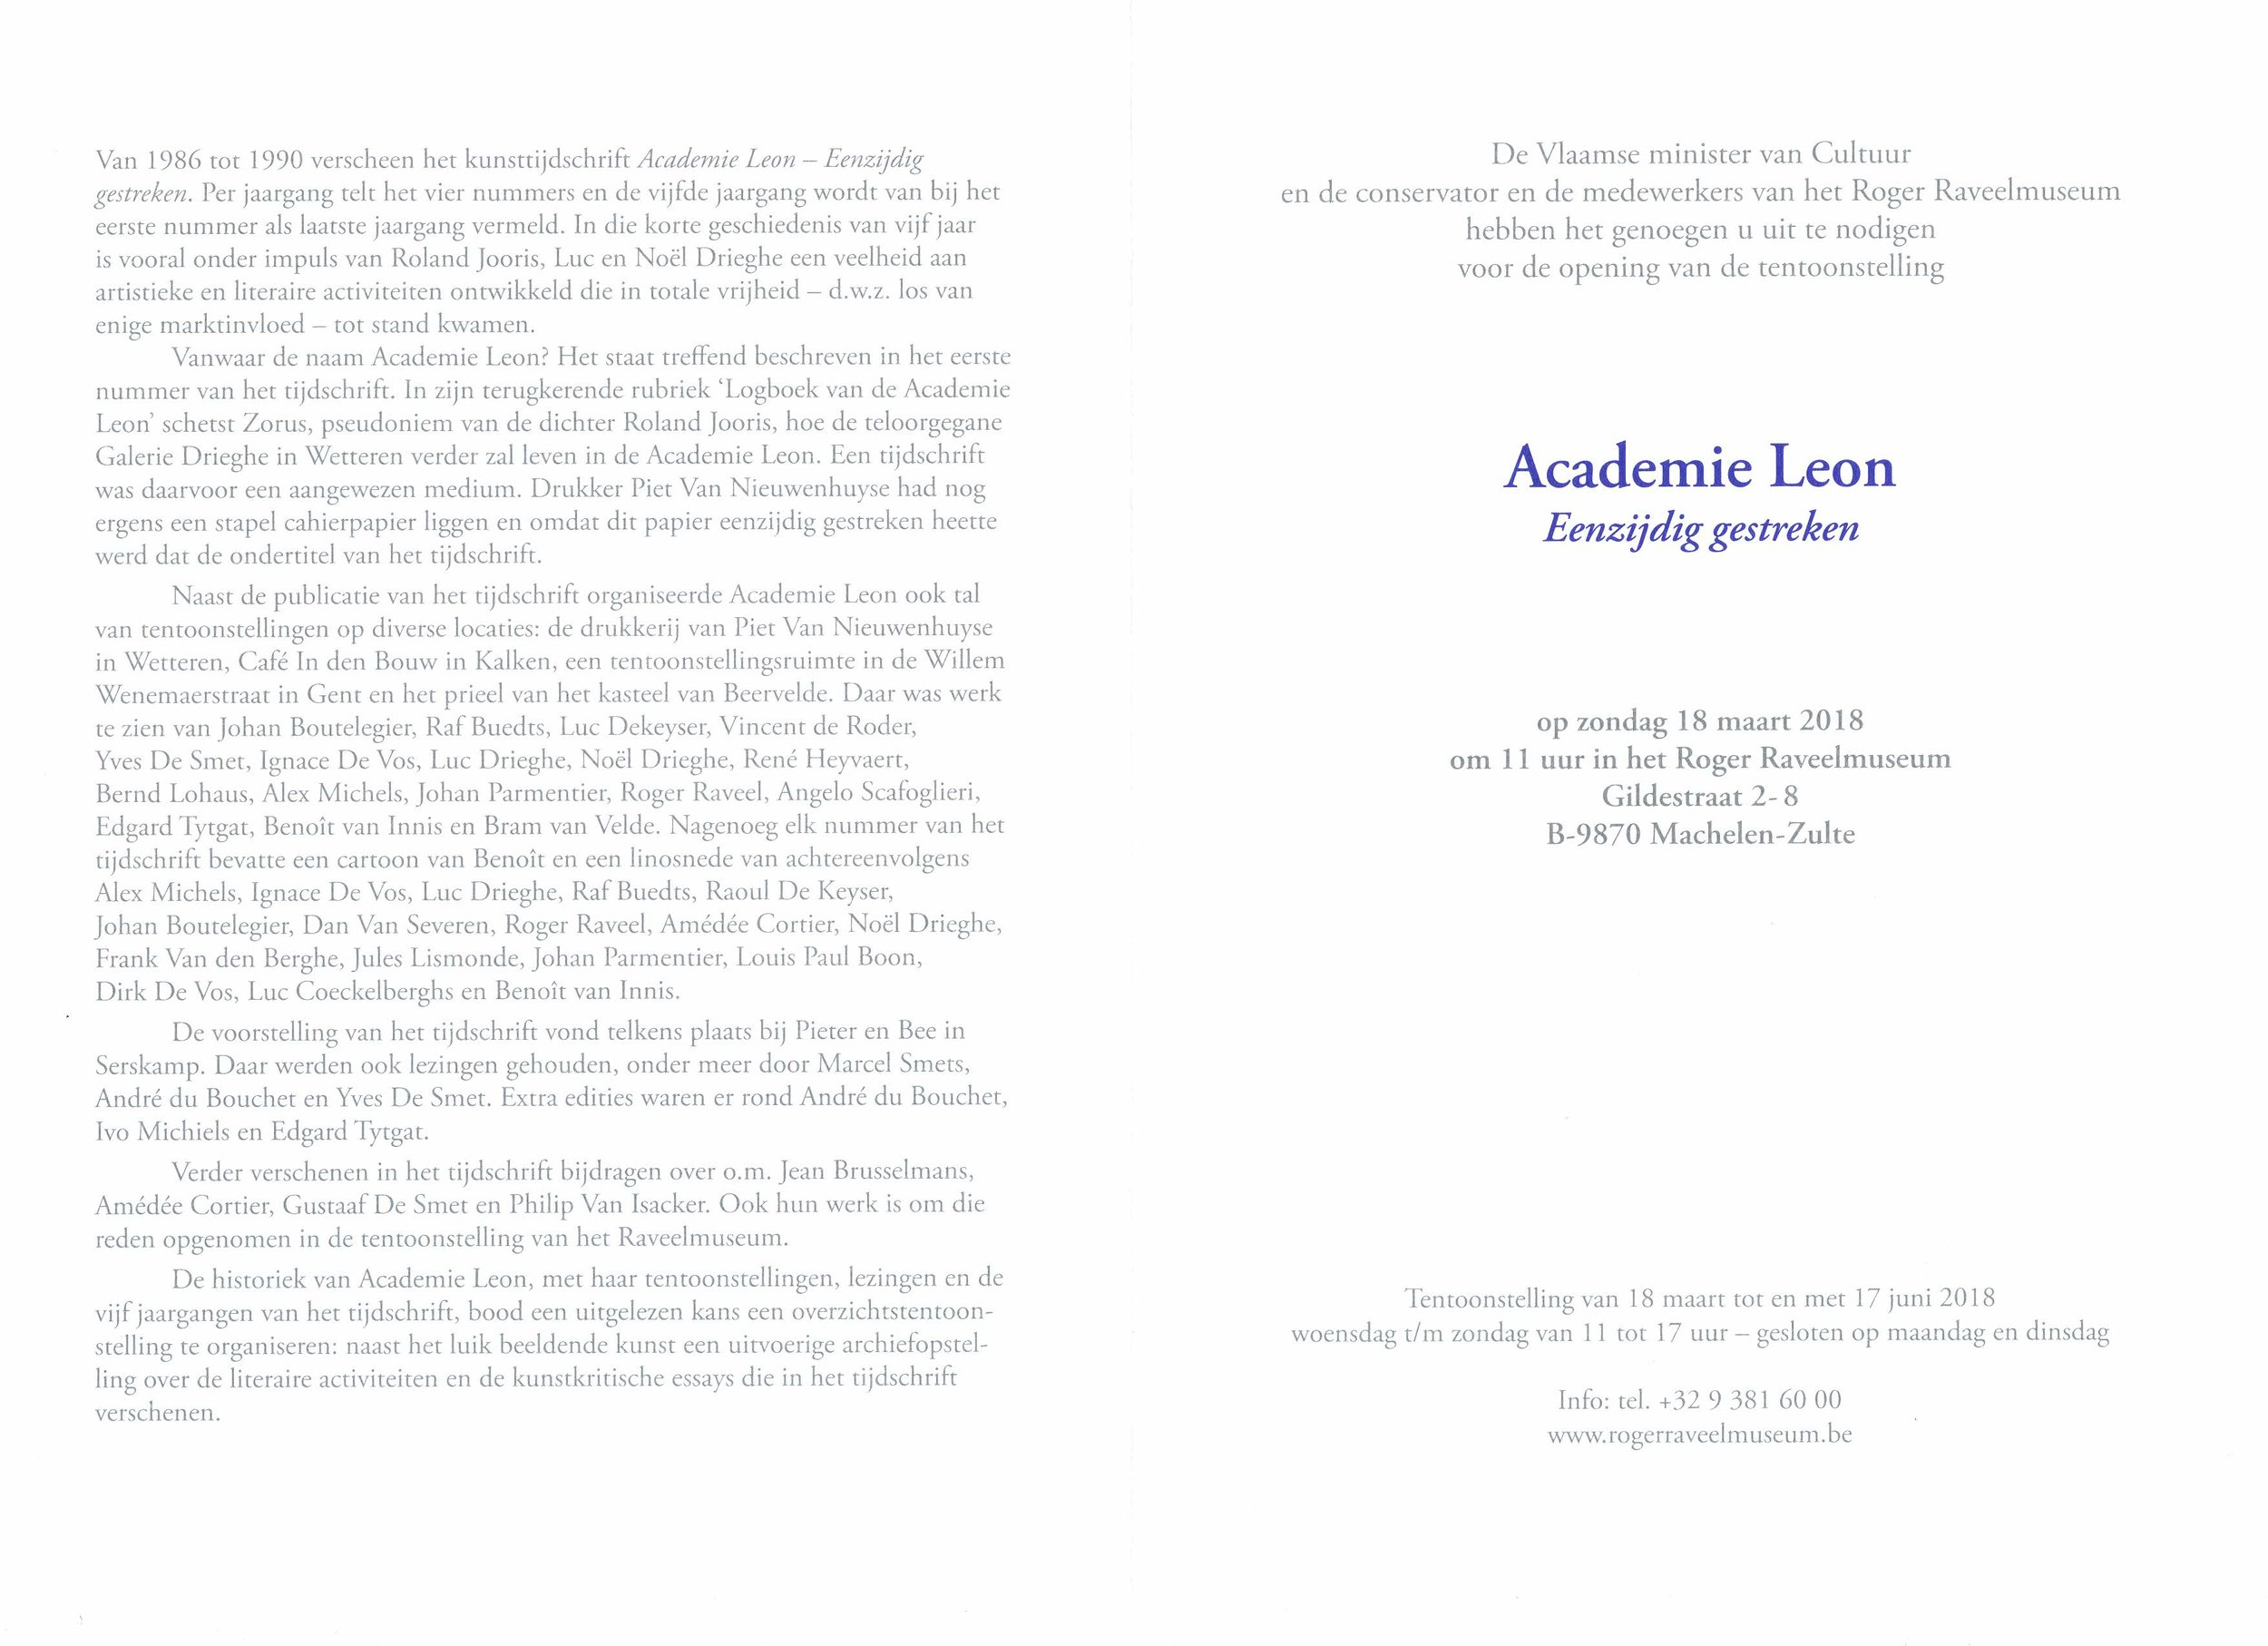 Pages from Uitnodiging Academie Leon.jpg